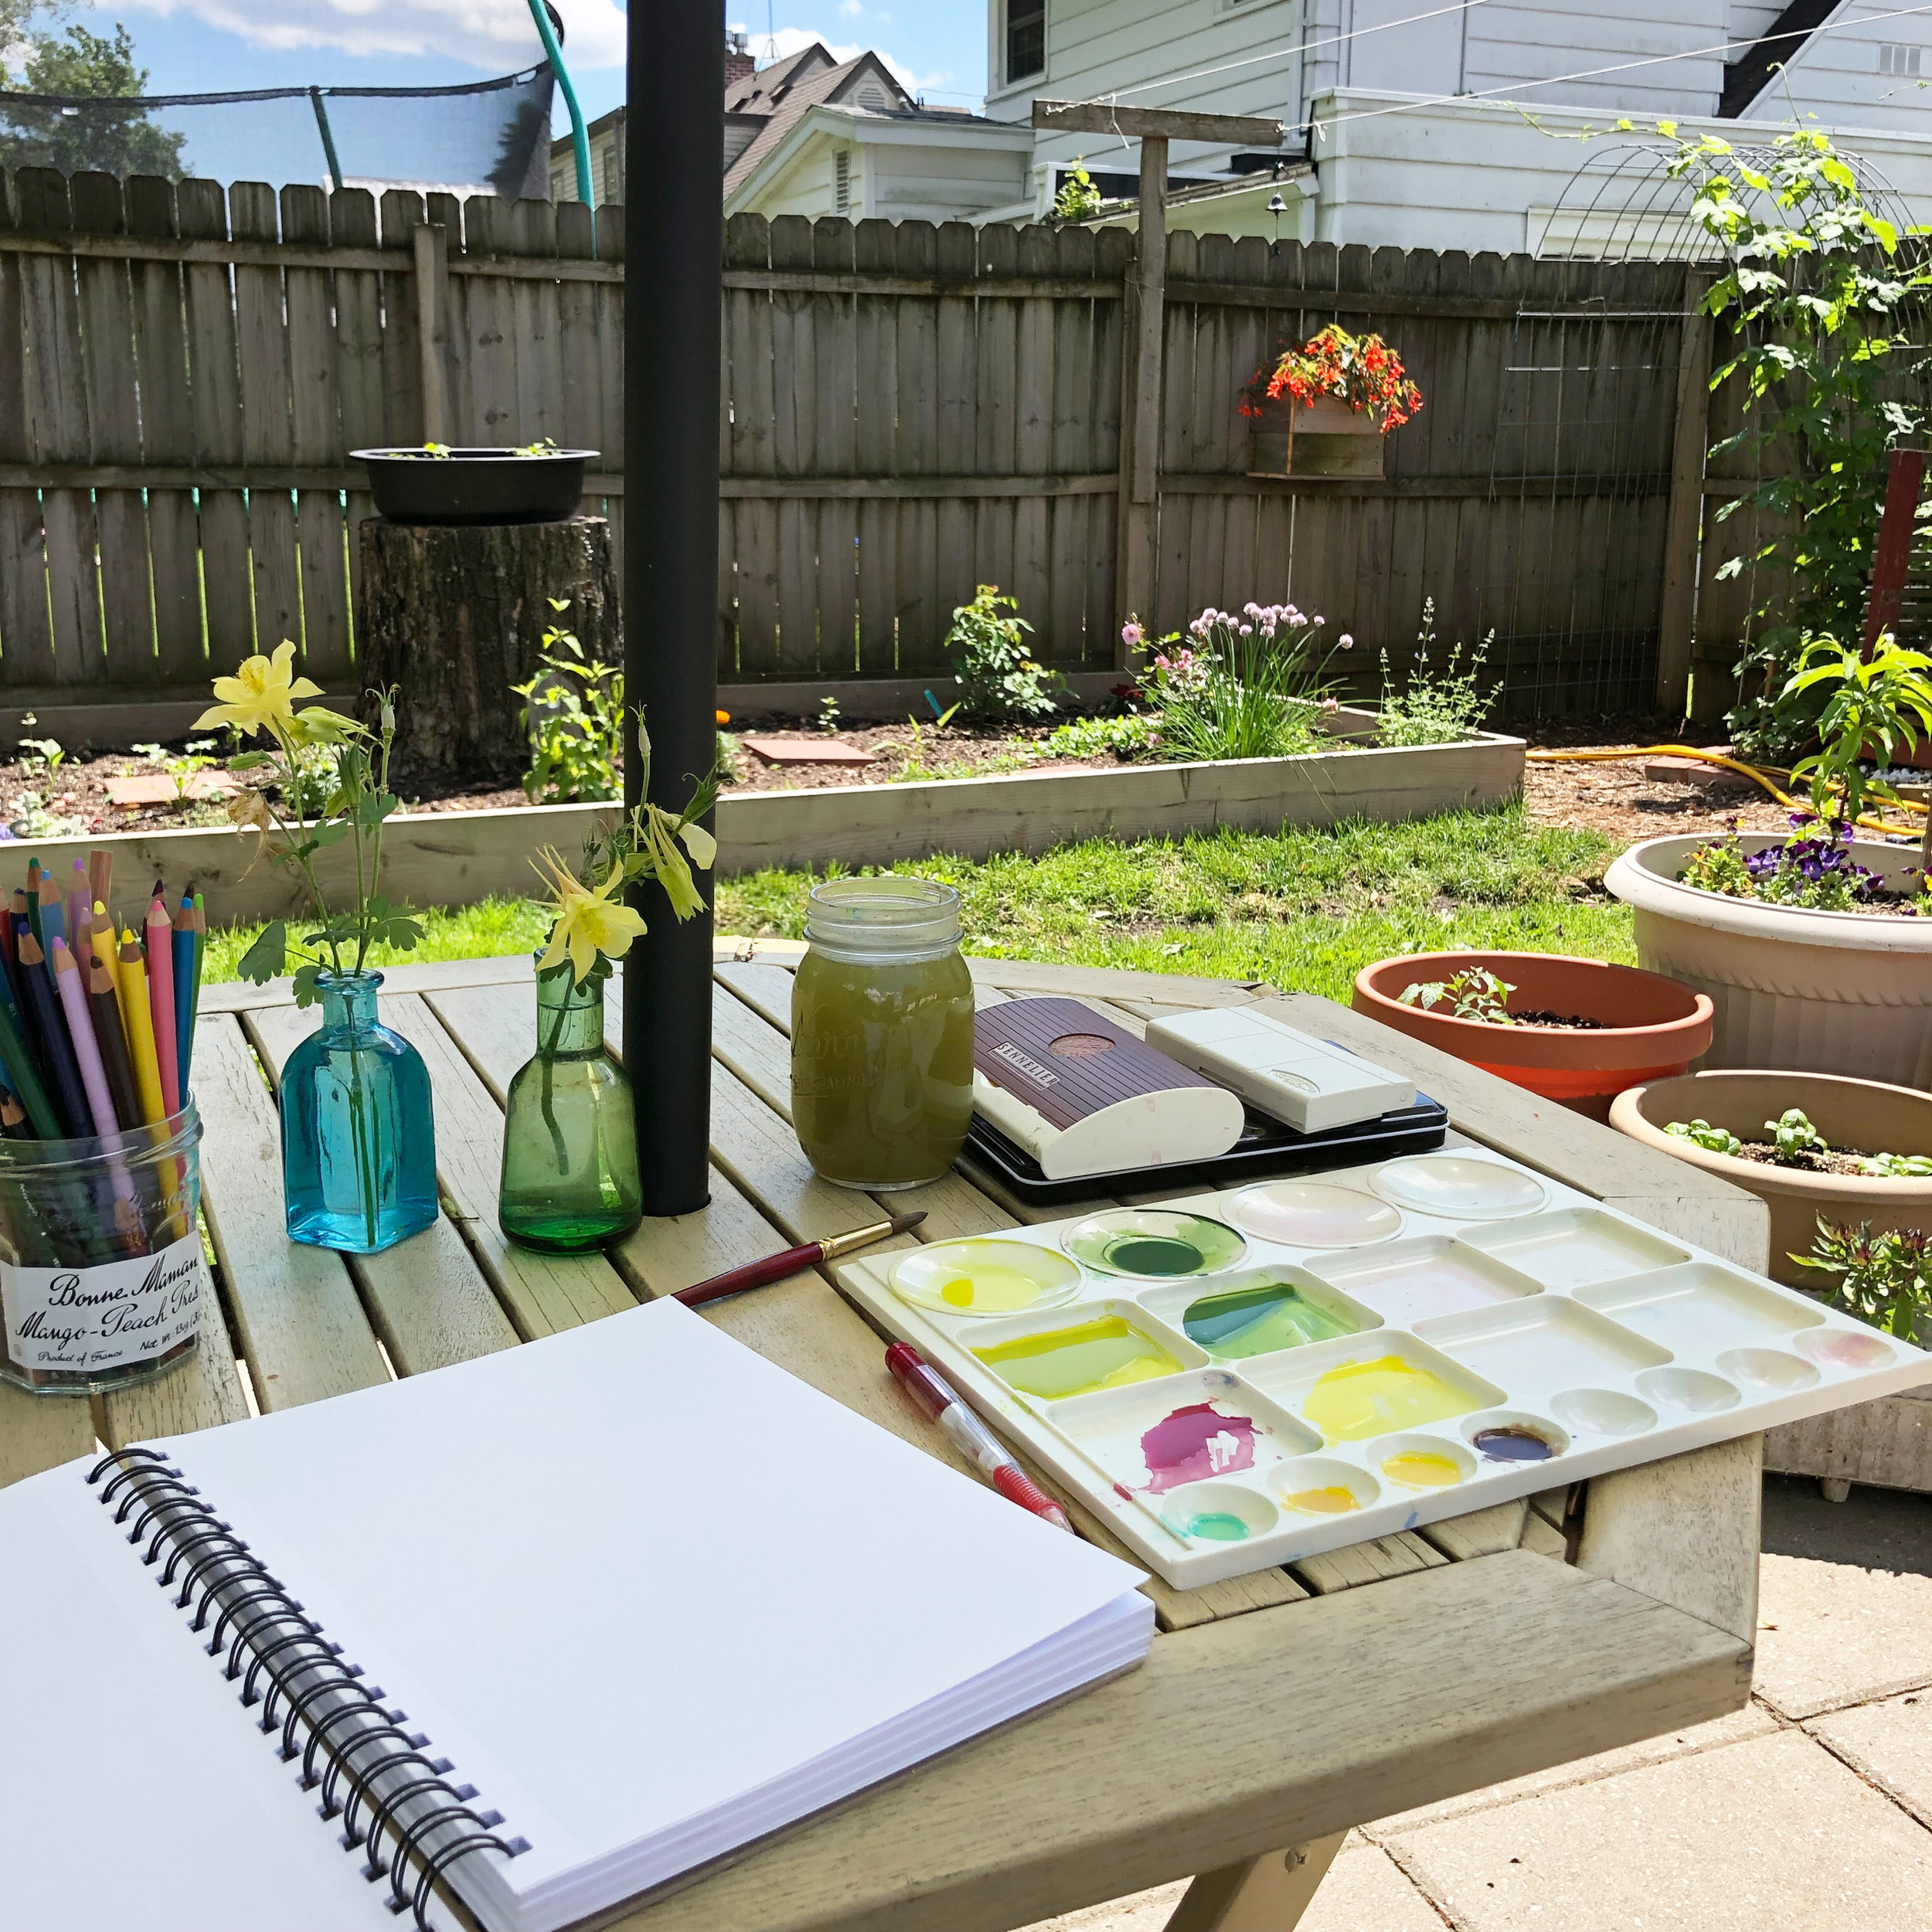 I Don't Usually Paint Outside, But I Have Been Extending My Studio to the Patio Table for Mixing Paint and Sketching